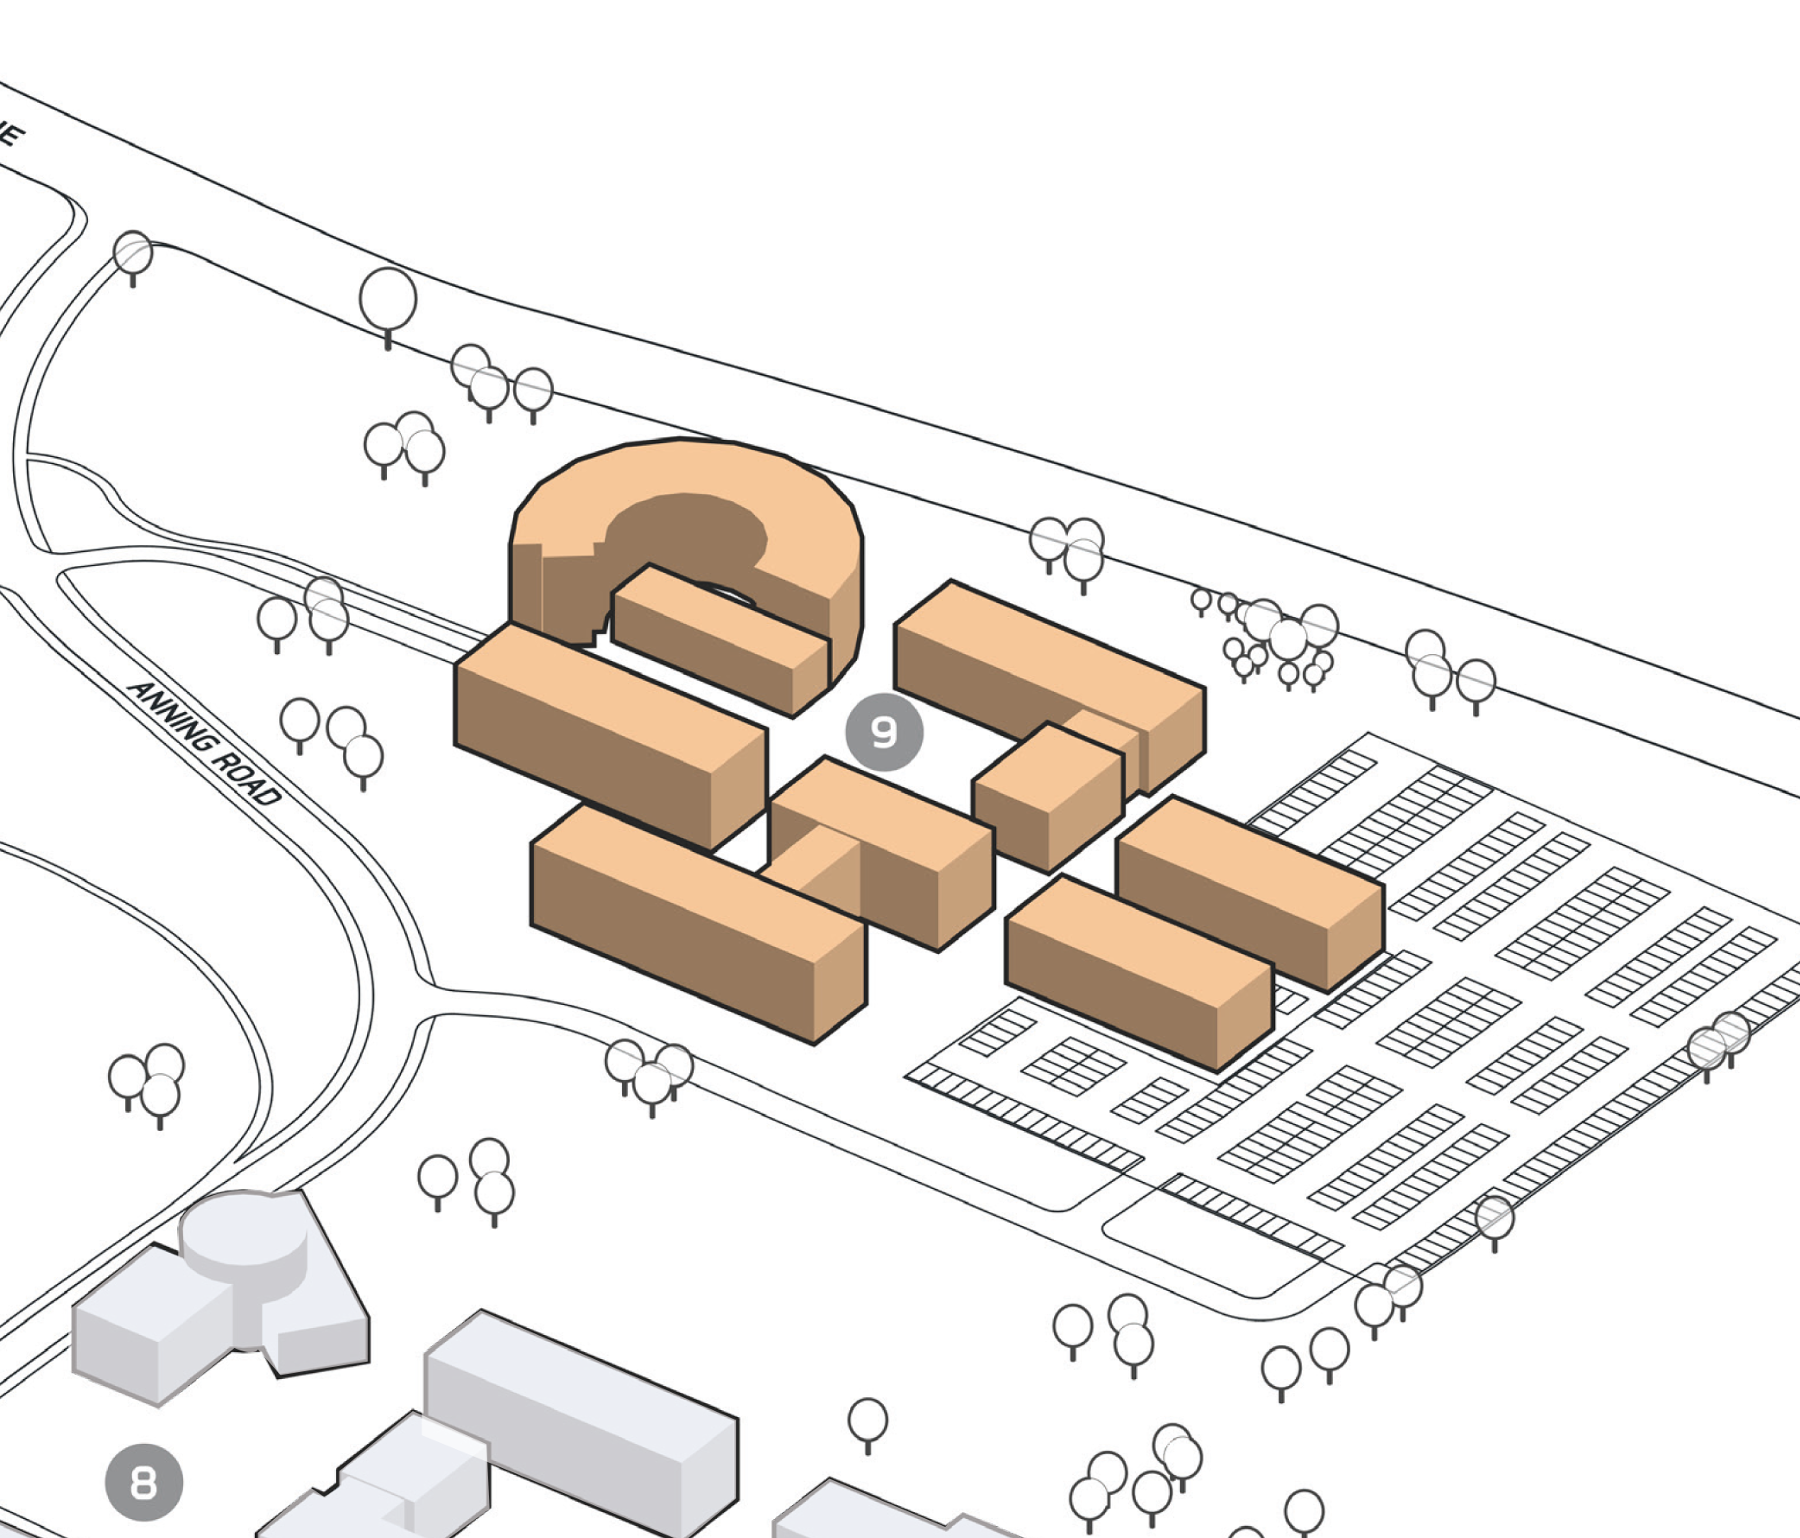 Park Plan highlighting cluster F Building 9